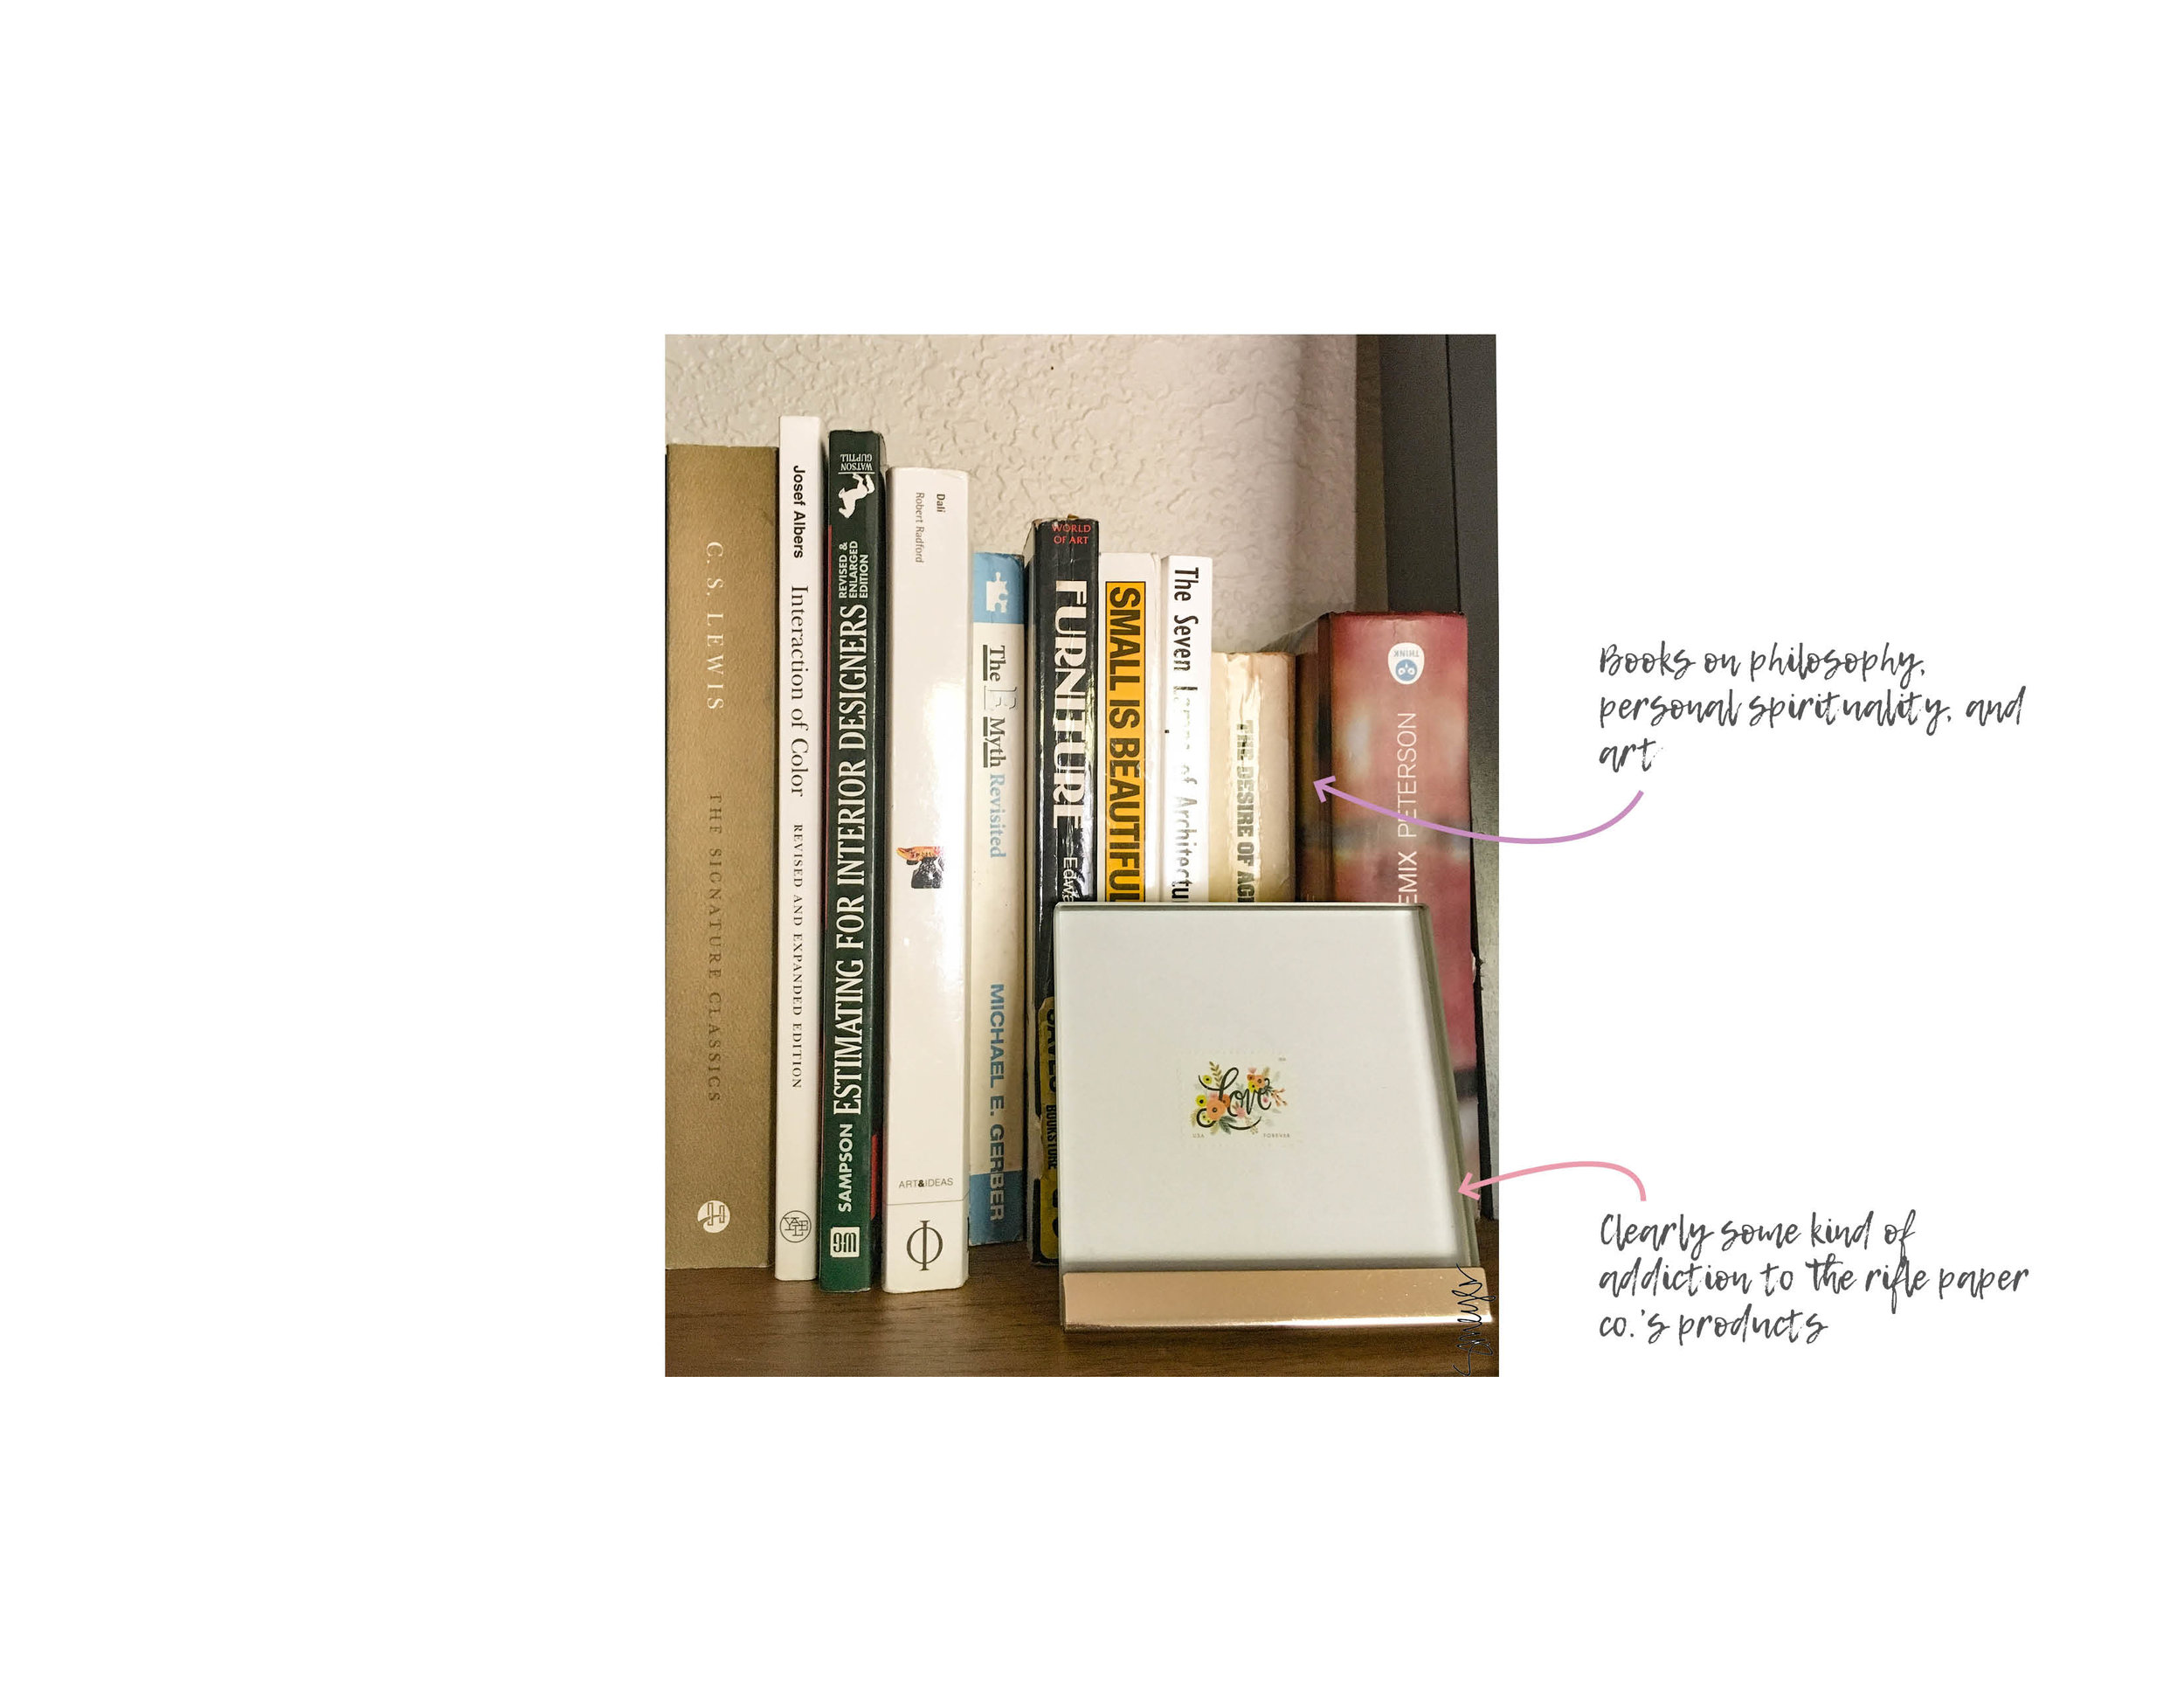 I've got books on books. Click on photo to enlarge.